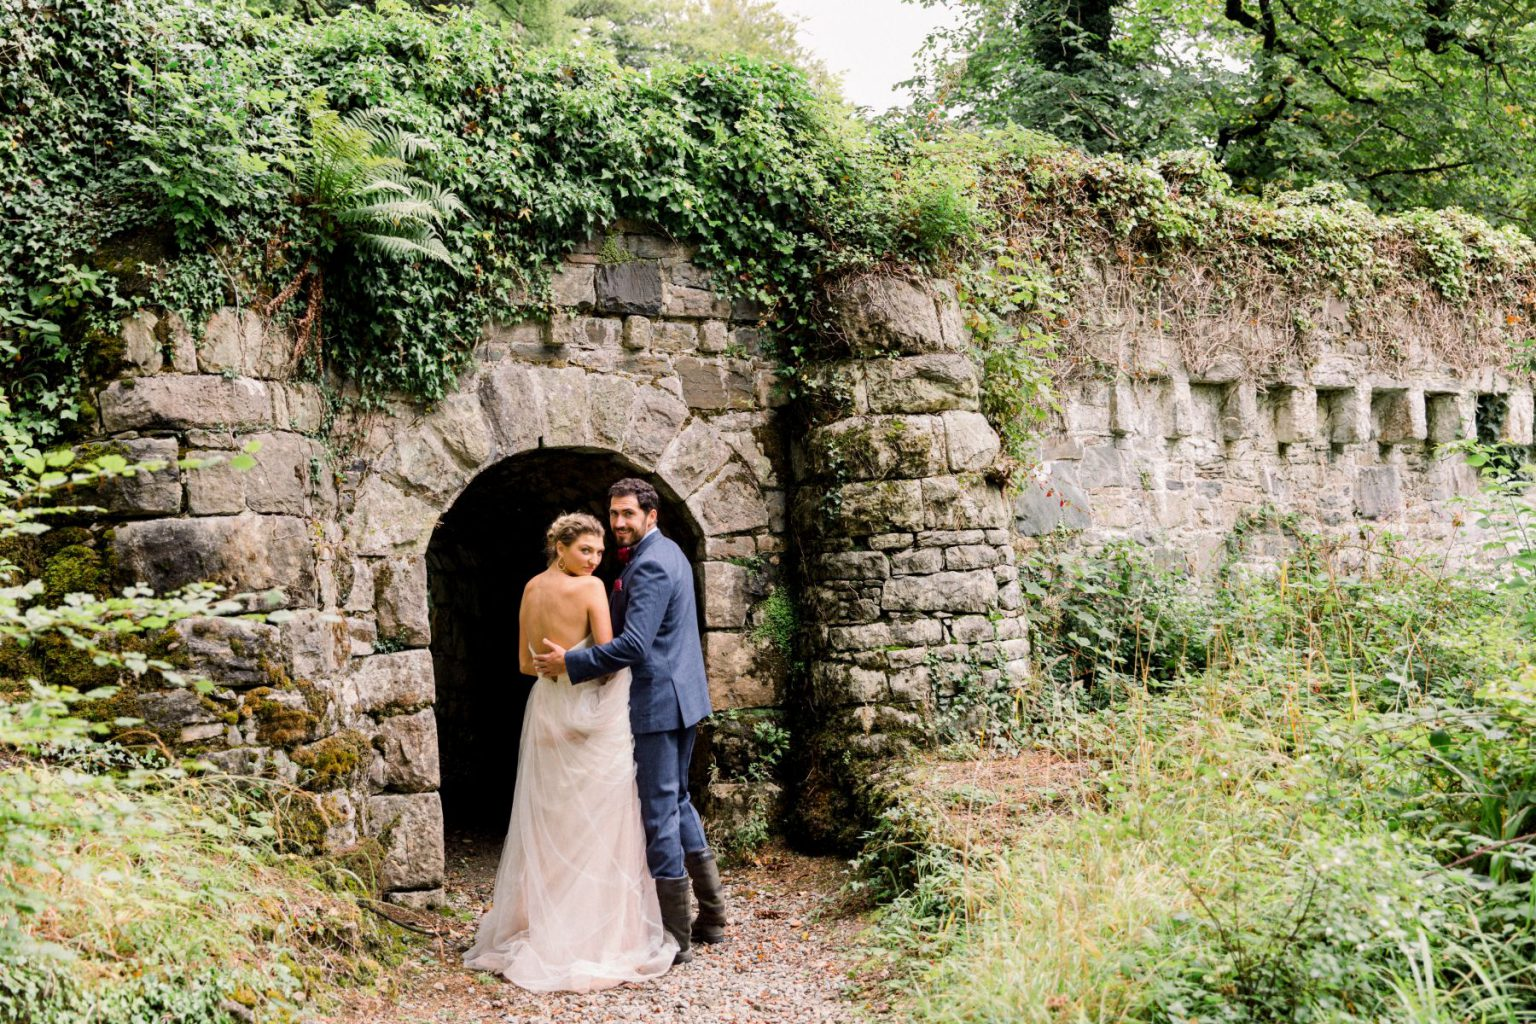 Bride and groom standing in front of a tunnel in Ireland.